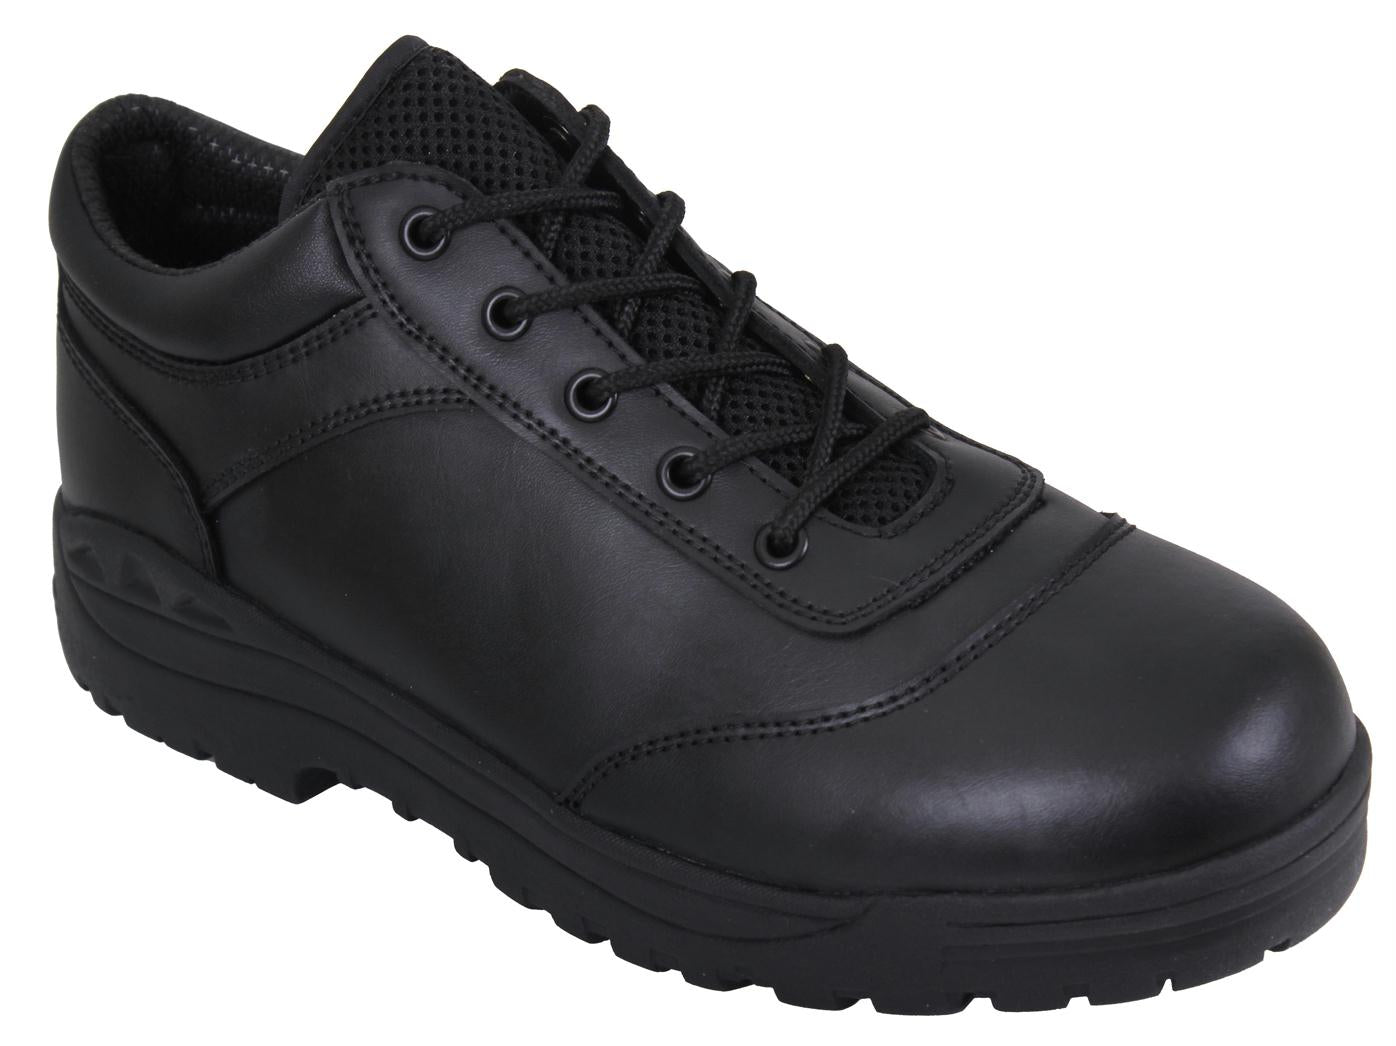 Rothco Tactical Utility Oxford Shoe